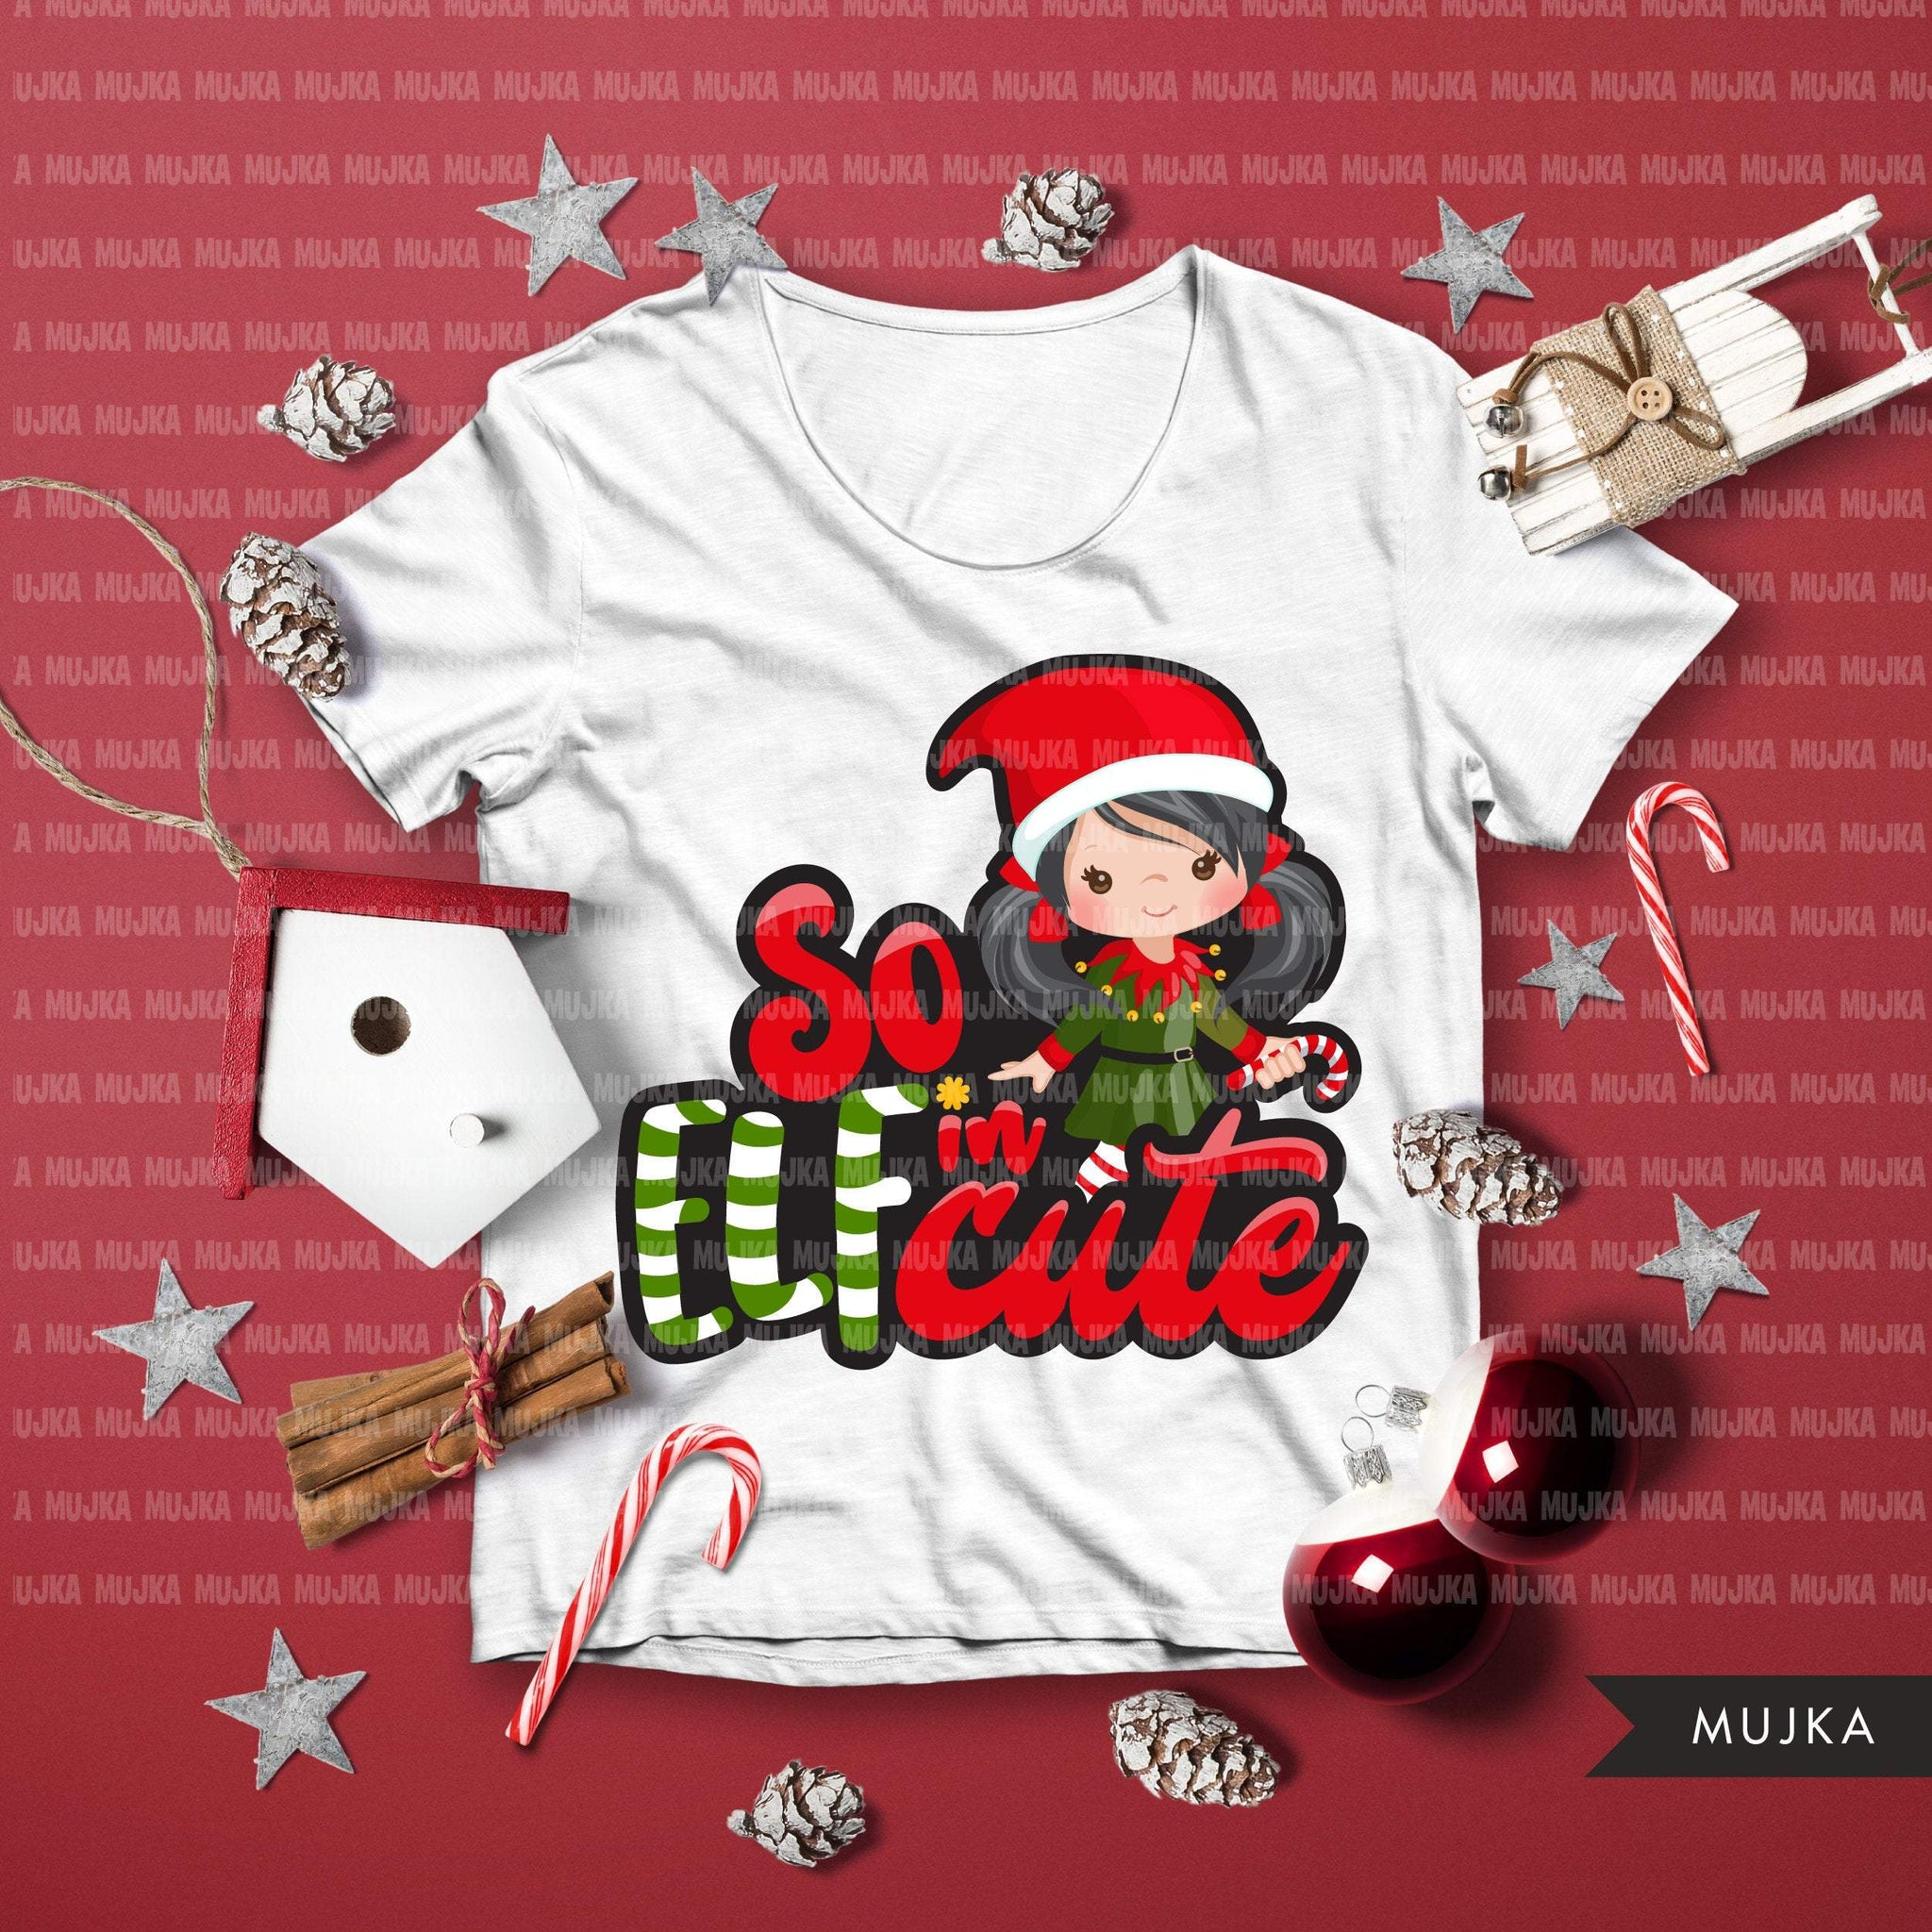 Christmas PNG digital, So Elfin Cute Printable HTV sublimation image transfer clipart, t-shirt girl graphics